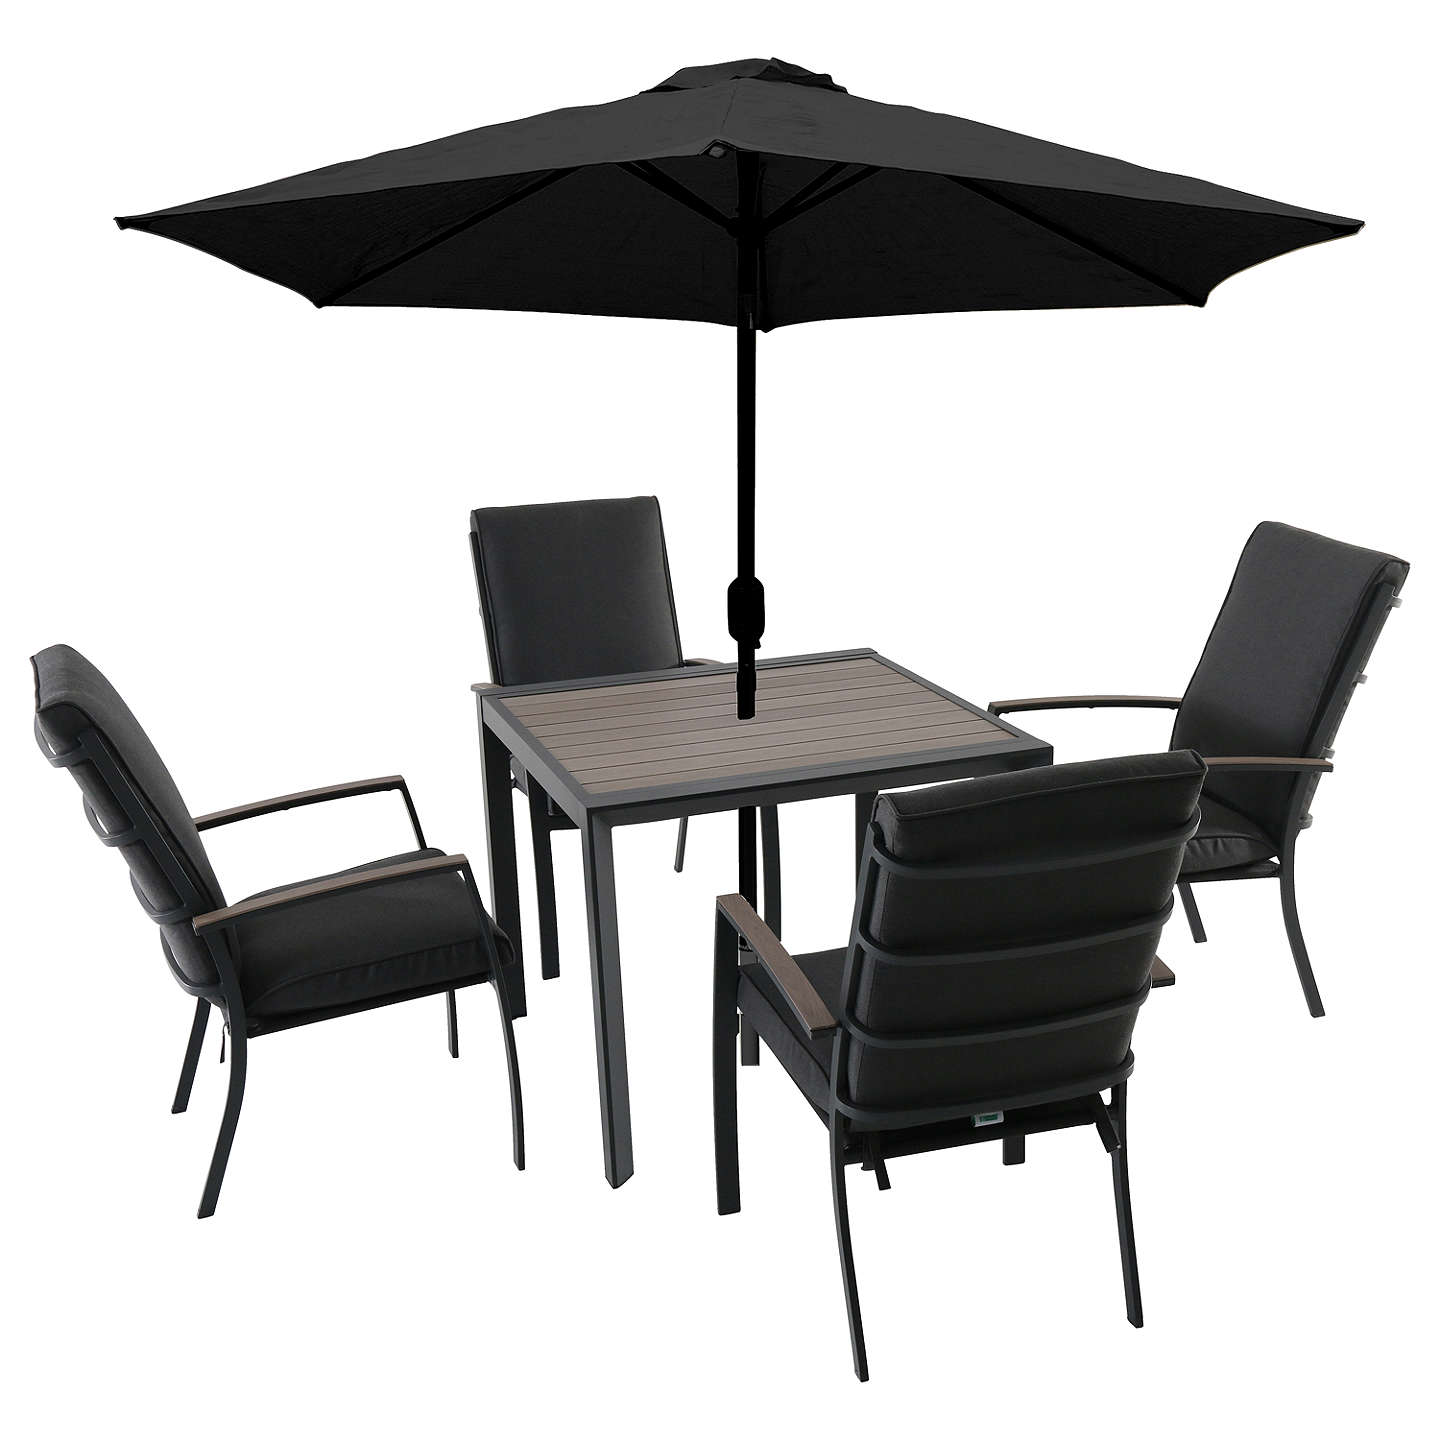 Lg outdoor milan 4 seater garden dining table chairs set - Lounger for the garden crossword ...